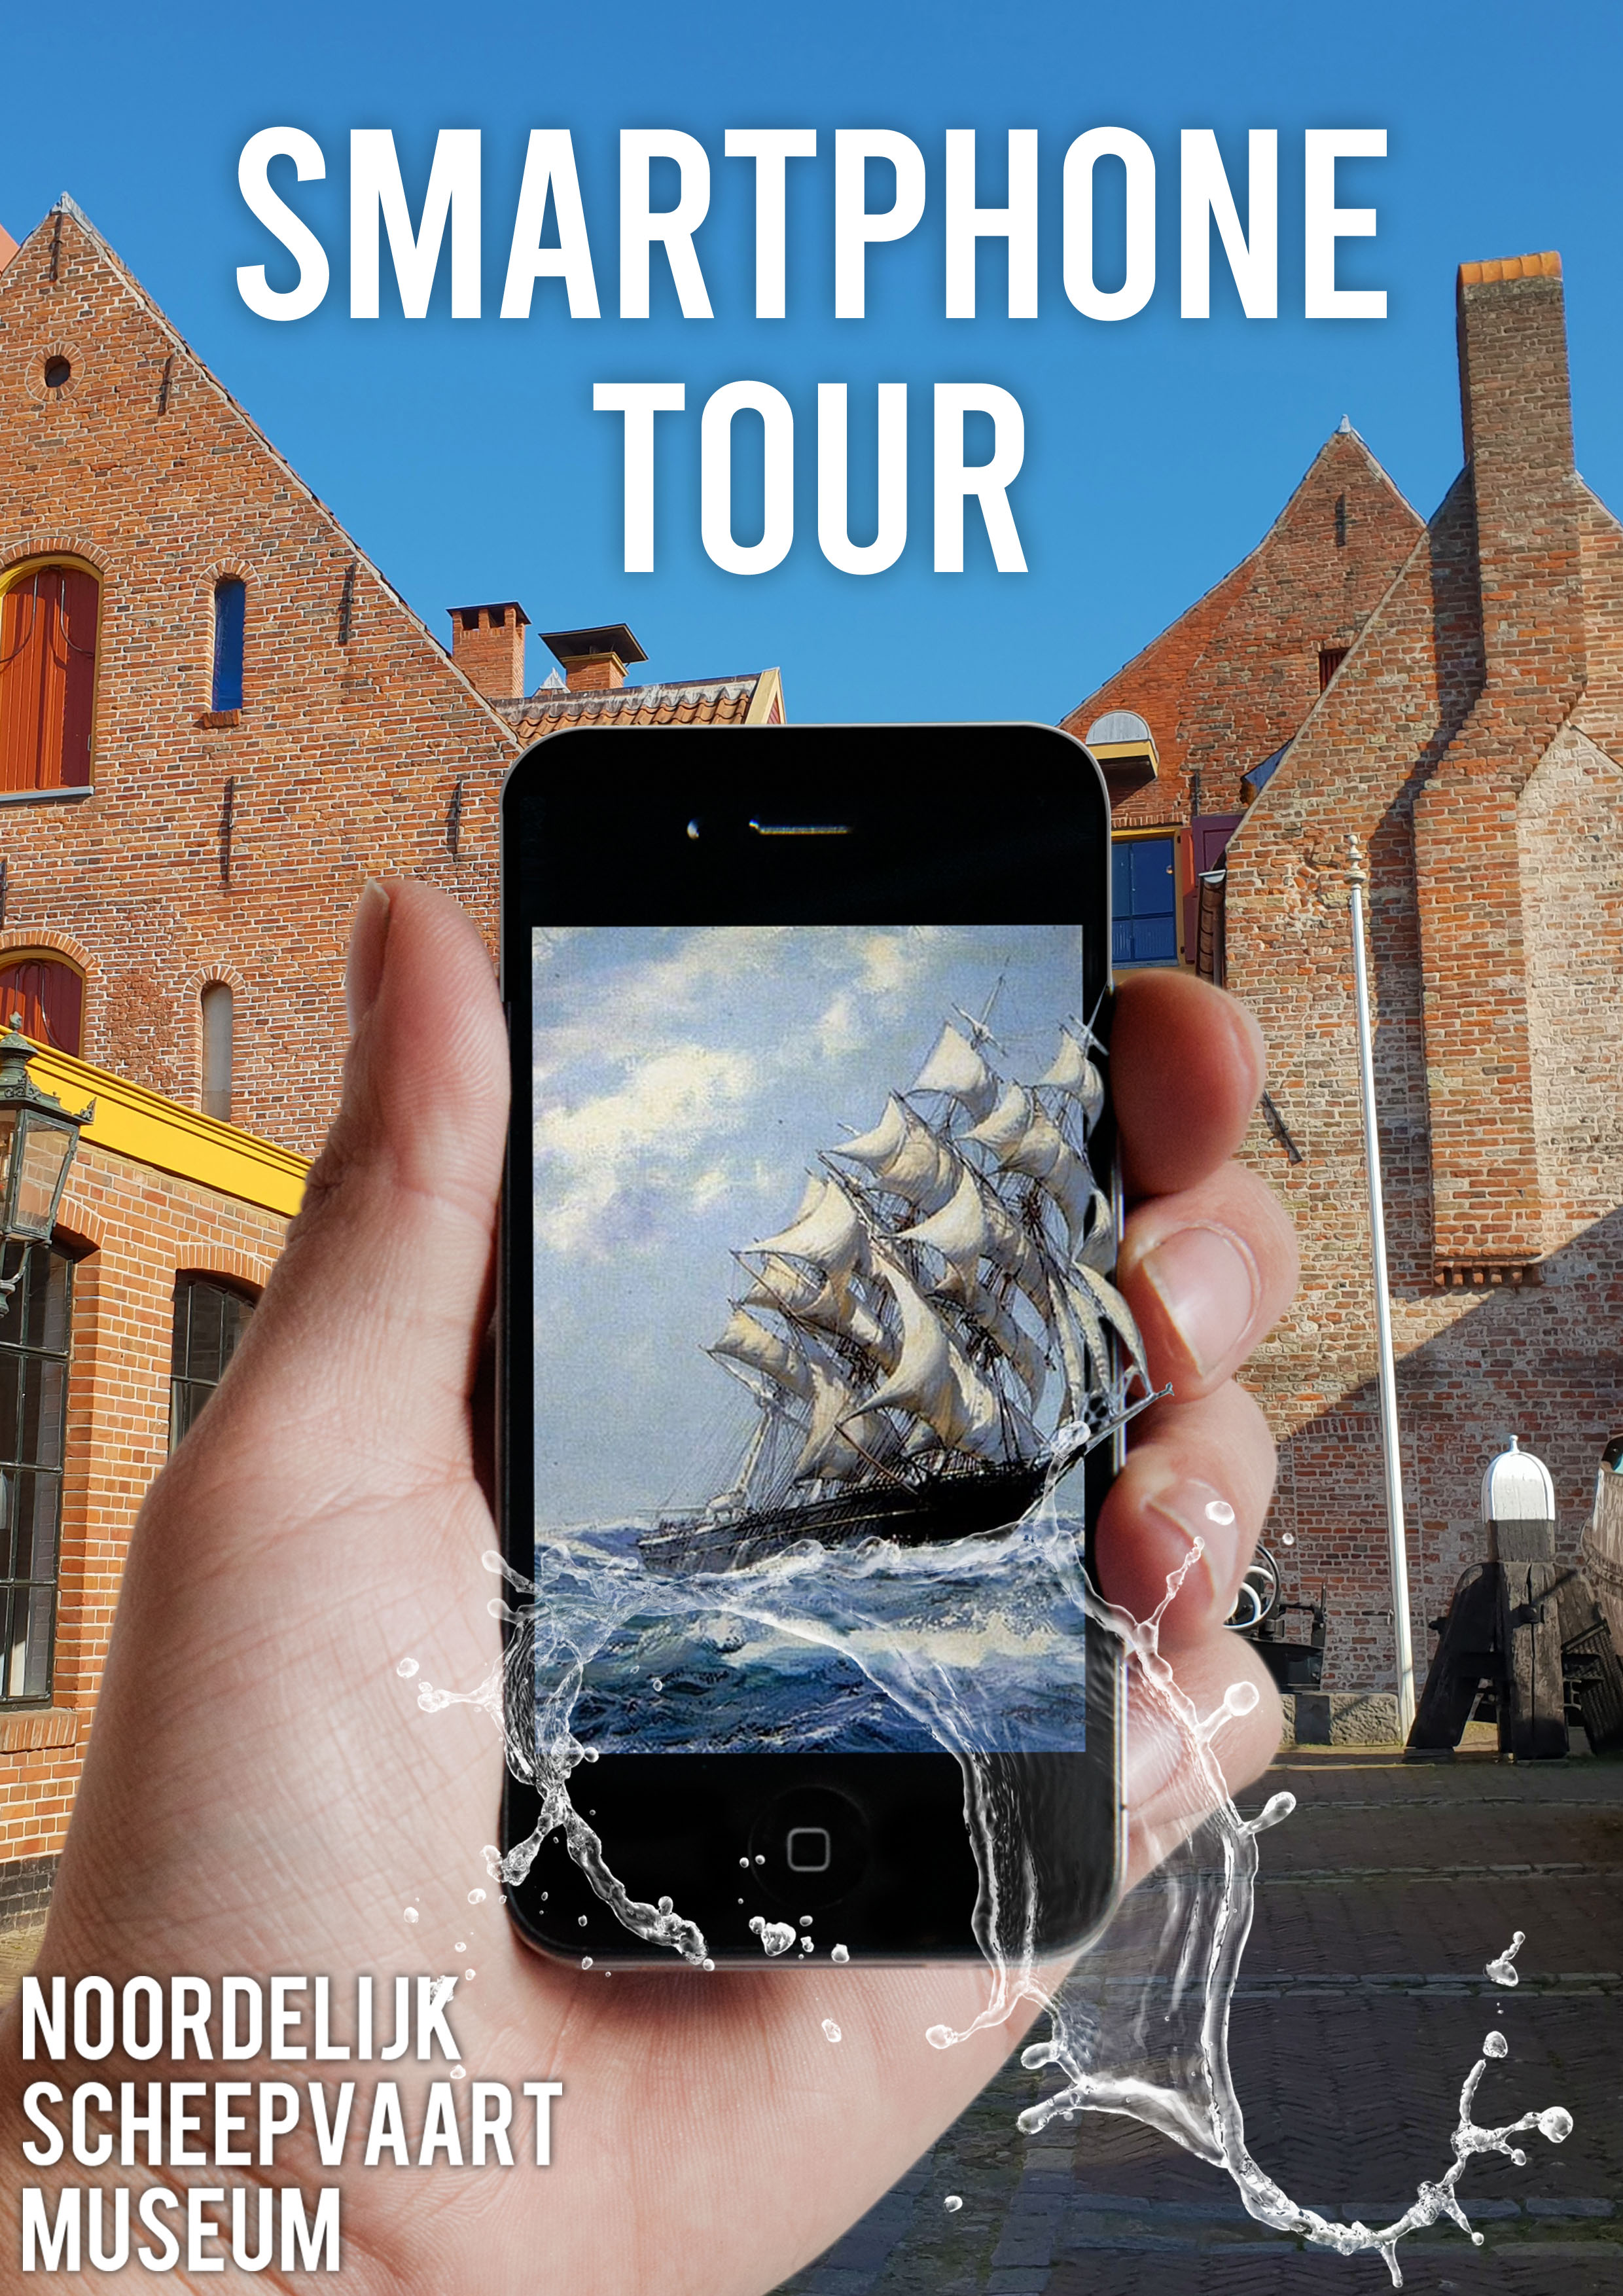 Smartphone tour website